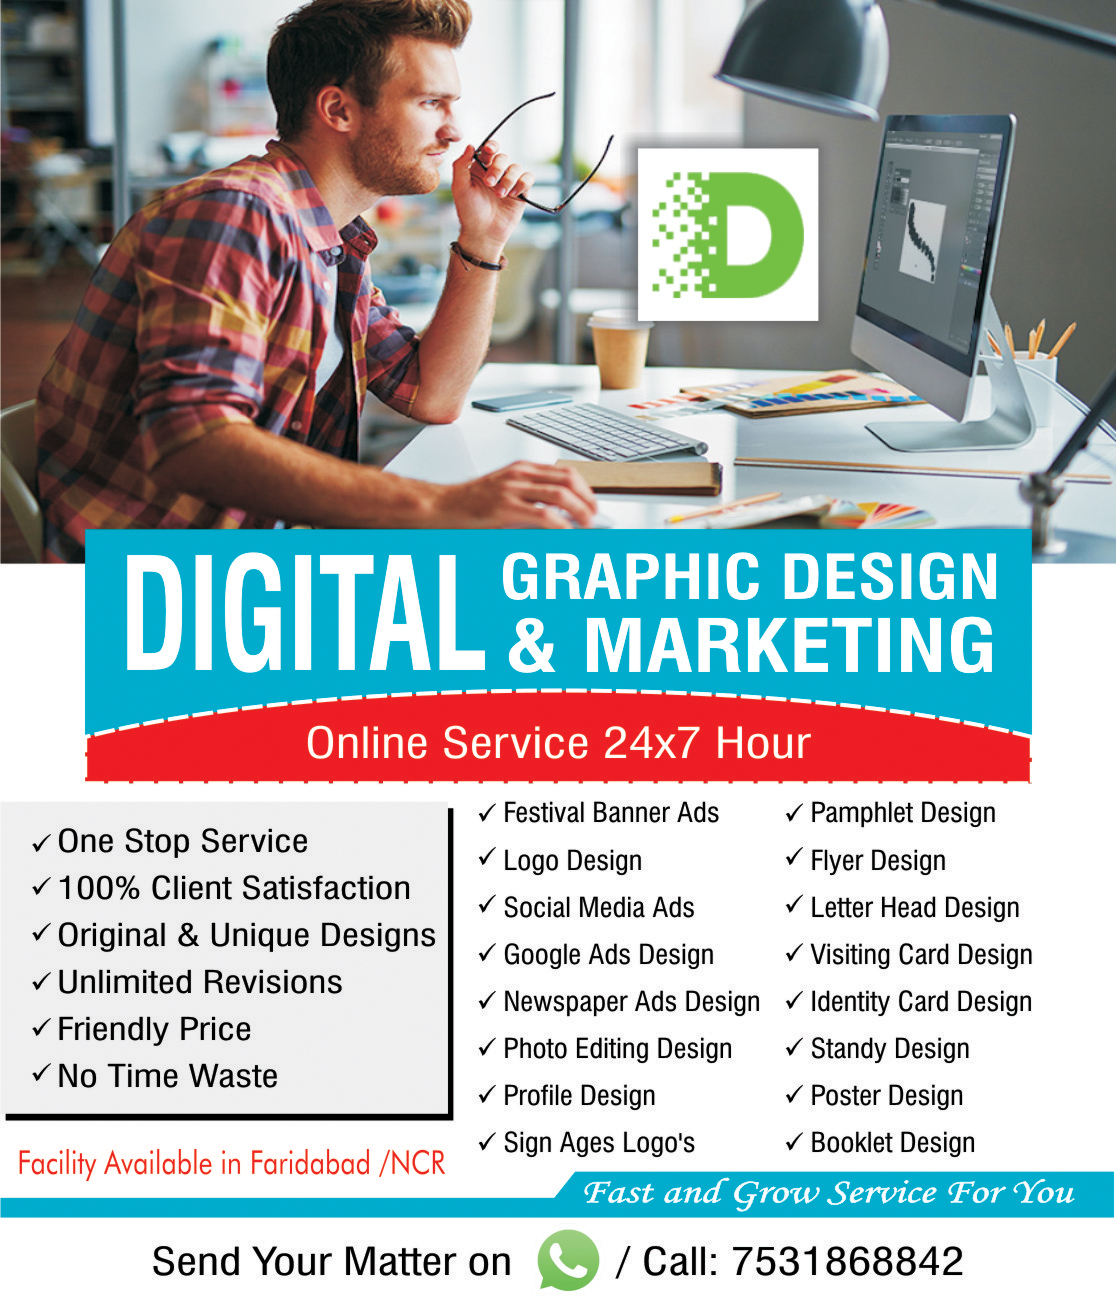 ONLINE DIGITAL GRAPHIC DESIGN AND MARKETING